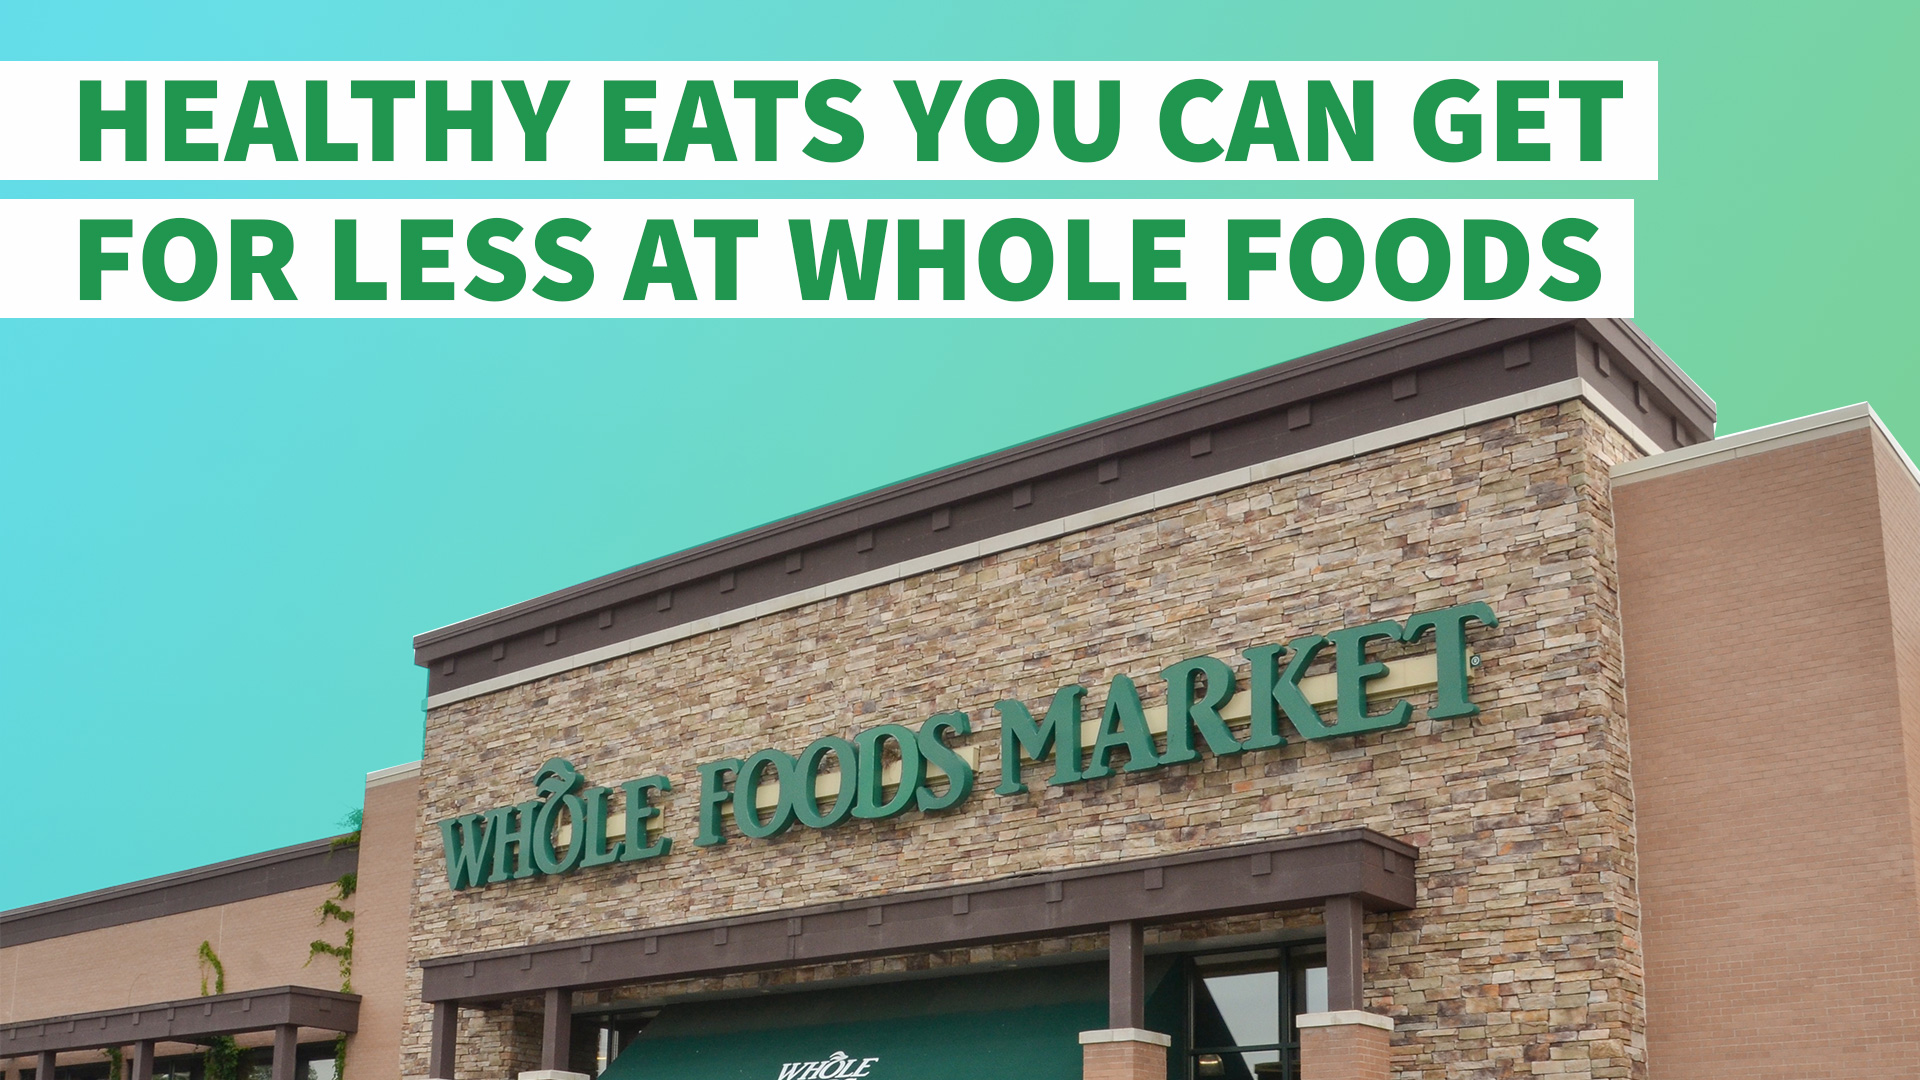 Blue apron vs grocery shopping - 8 Healthy Eats You Can Get For Less At Whole Foods